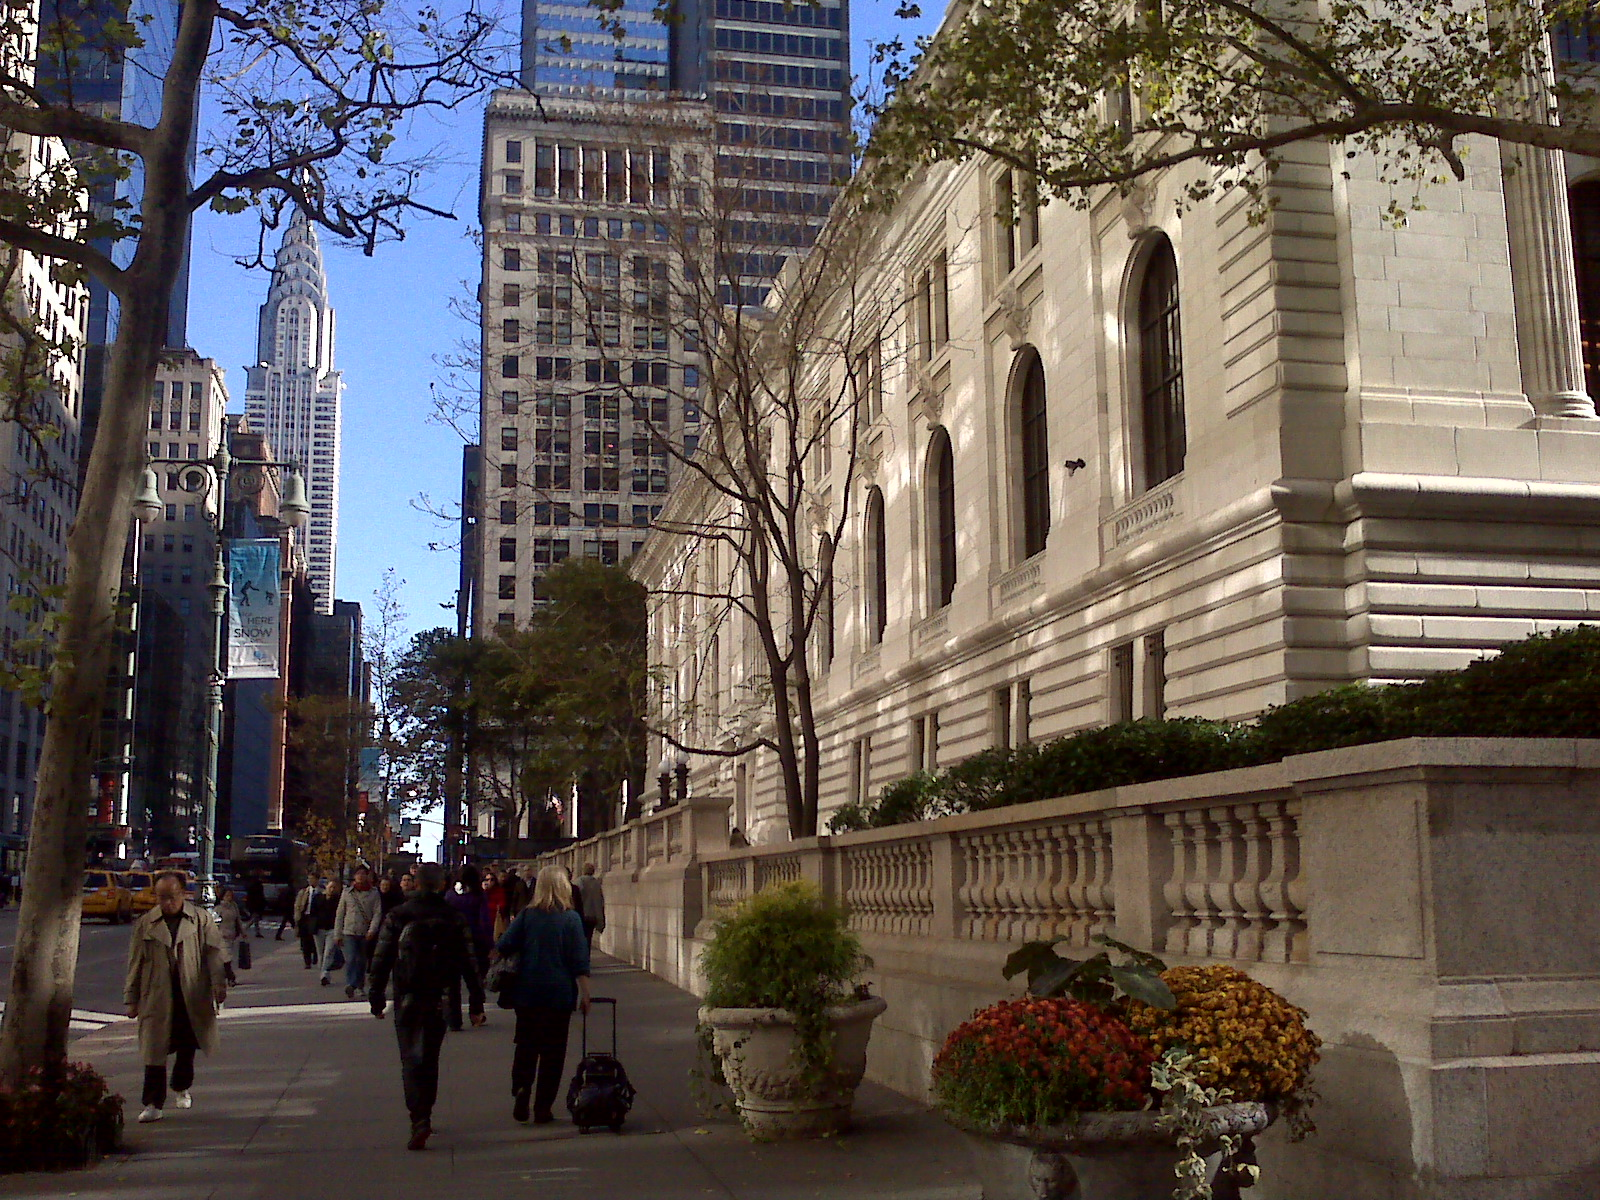 New York City Public Library 纽约图书馆